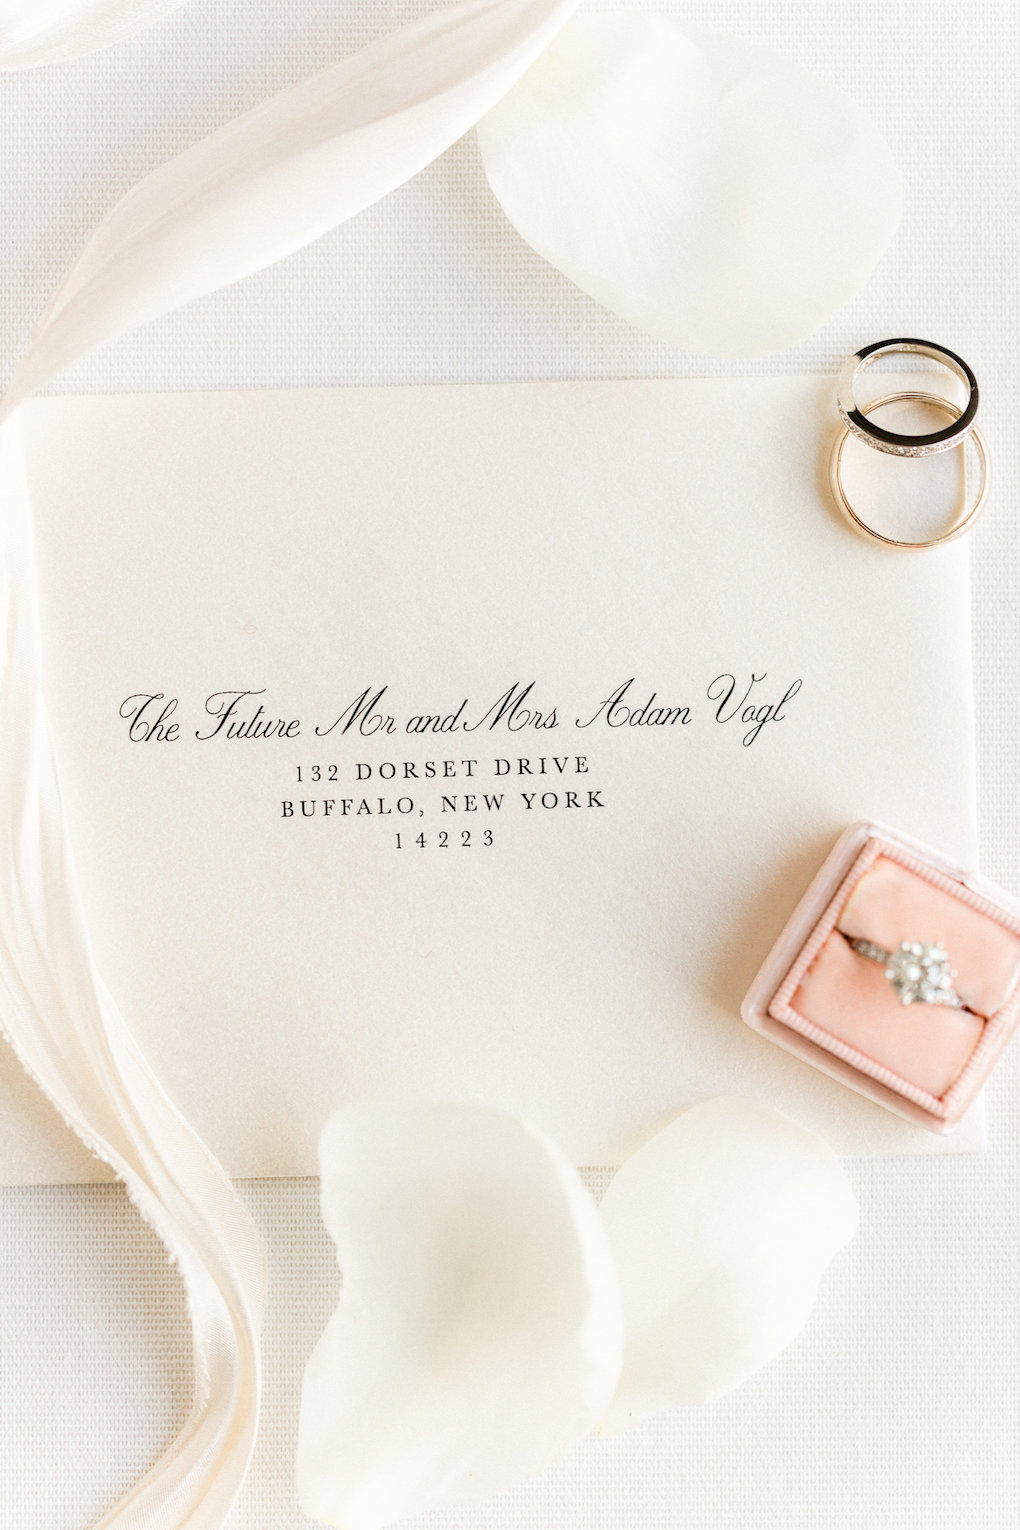 Simple wedding invitation design for chic wedding in Buffalo, NY planned by Exhale Events. Find more timeless wedding inspiration at exhale-events.com!